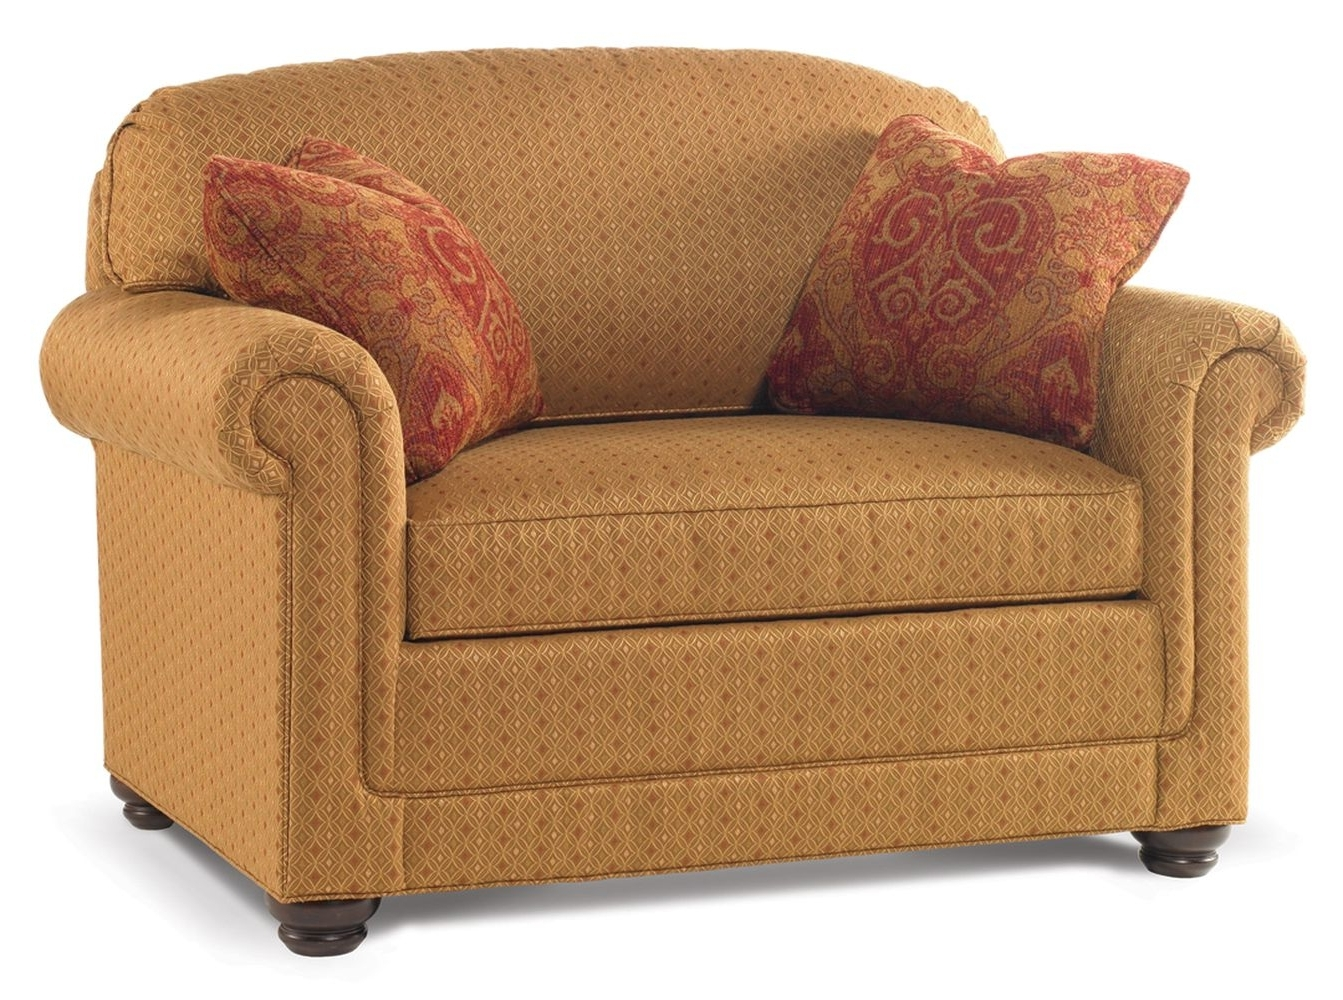 Popular Sofas And Chairs In Small Twin Sleeper Sofas Chairs With Pillow And Storage Plus Brown (View 11 of 20)